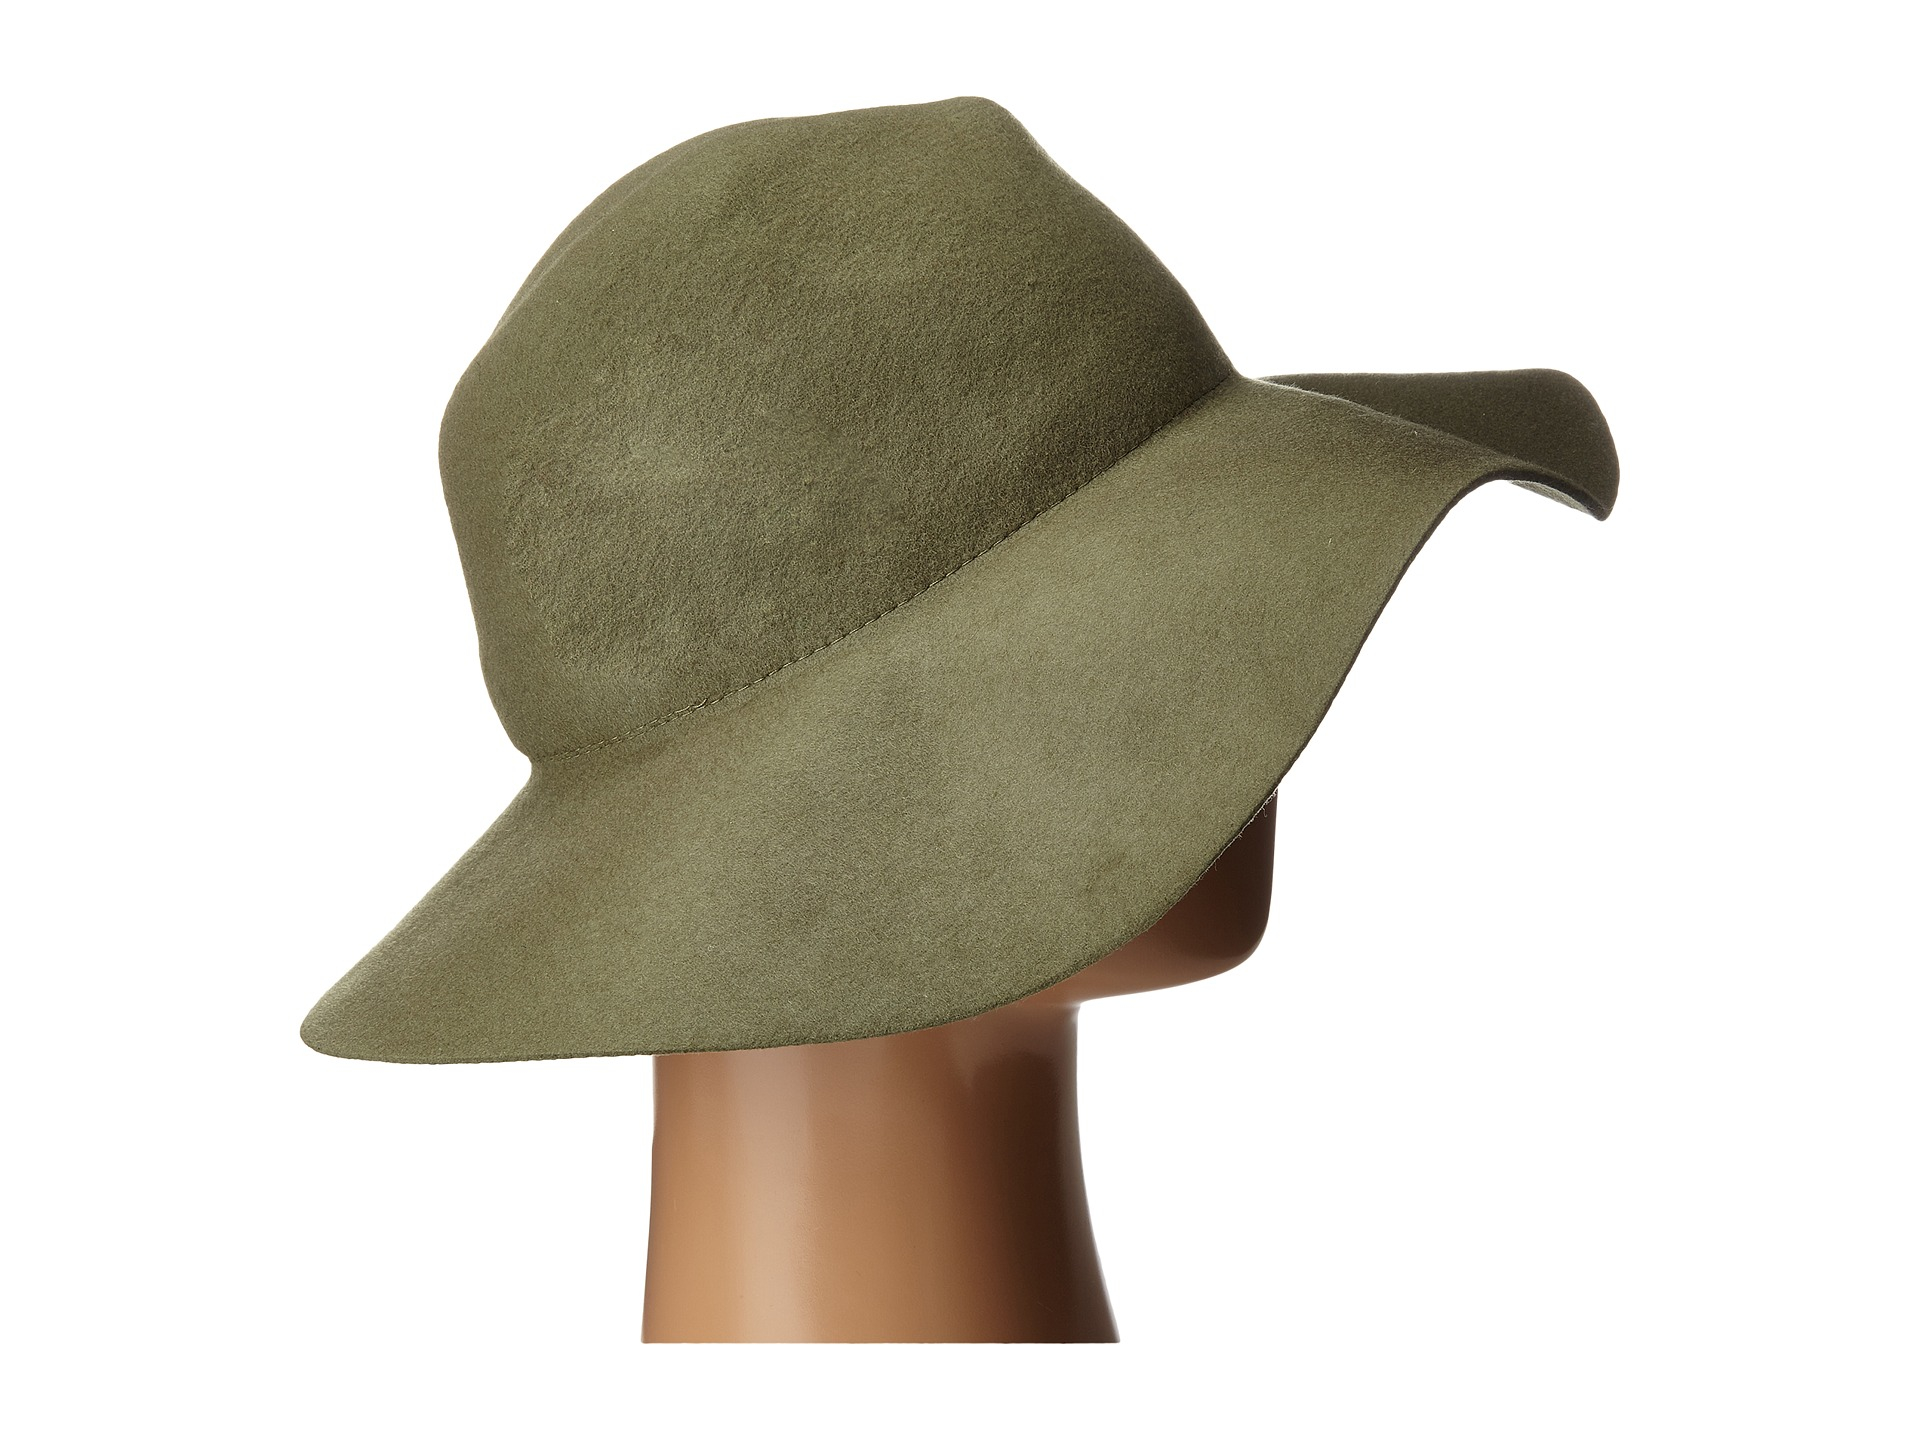 af1a5fdc5 Vince Camuto Wool Felt Panama Hat in Green - Lyst